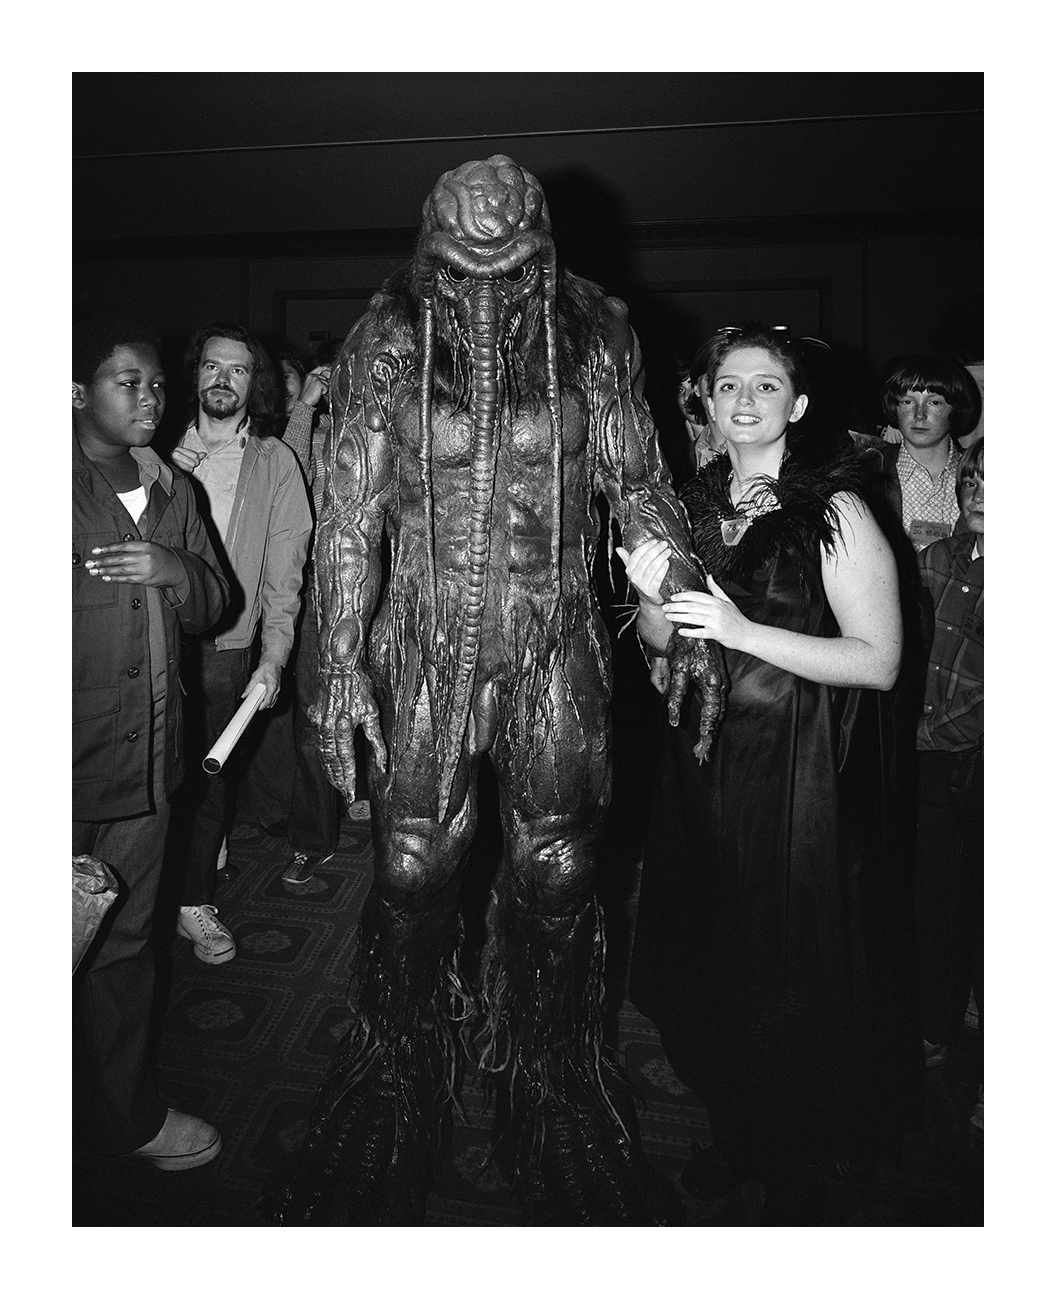 Winner at a Costume Competition, Detroit Hilton, Detroit, 20 Nov. 1973